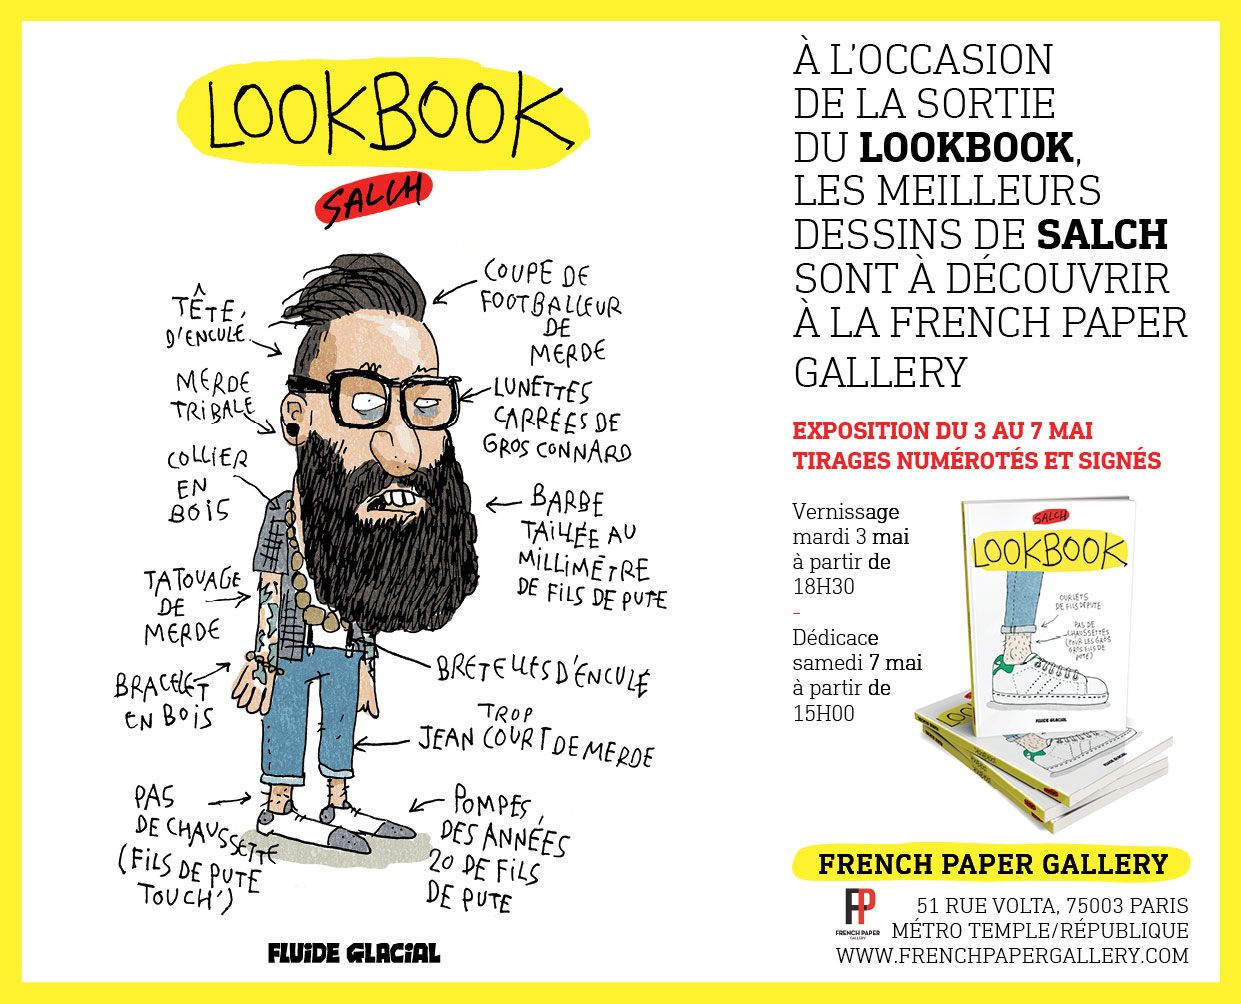 Lookbook de SALCH